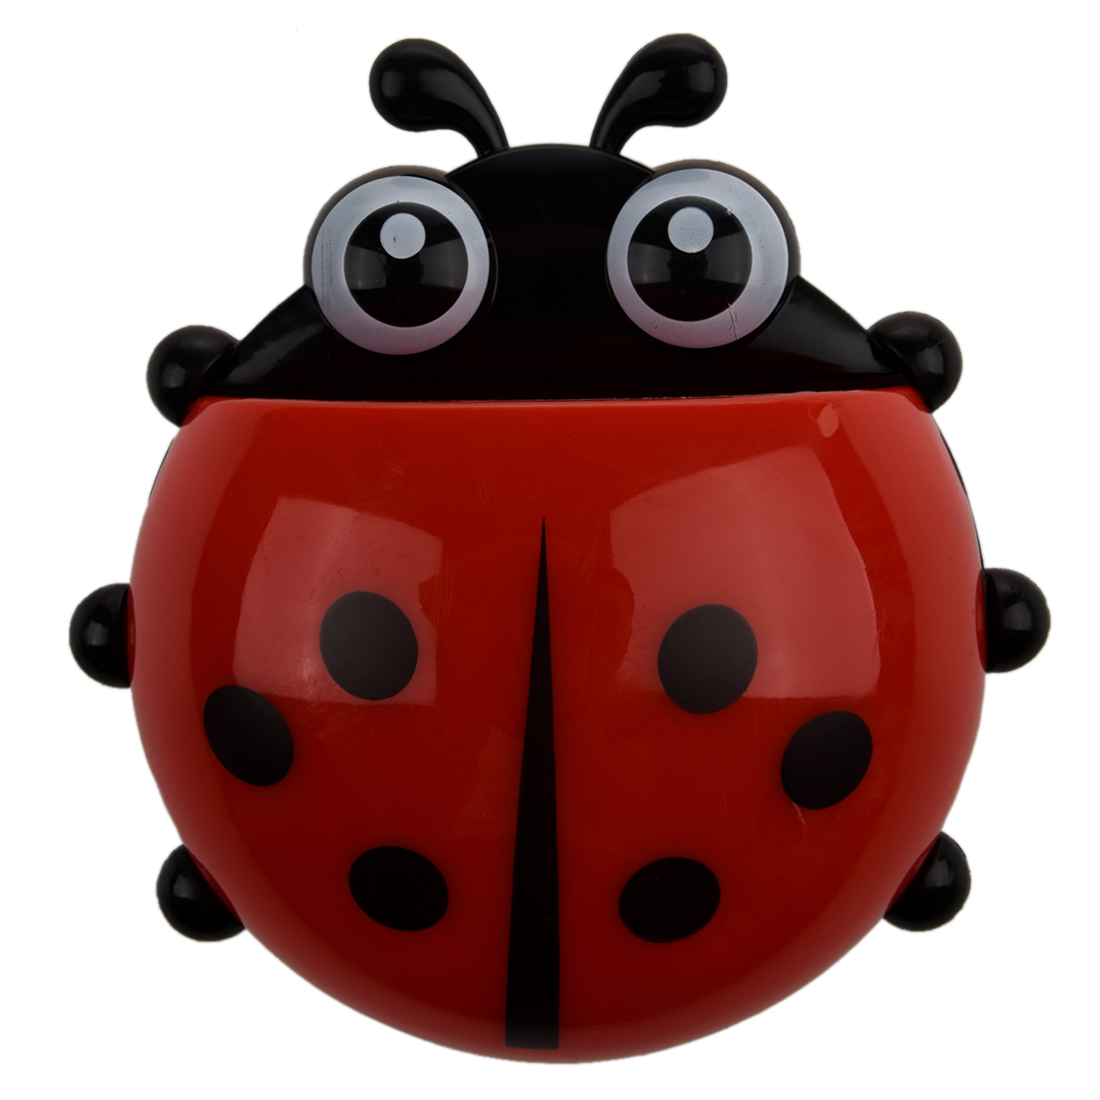 Promotion! Convenient Bathroom Toothbrush Stuff Ladybug Wall Suction Holder-Red image